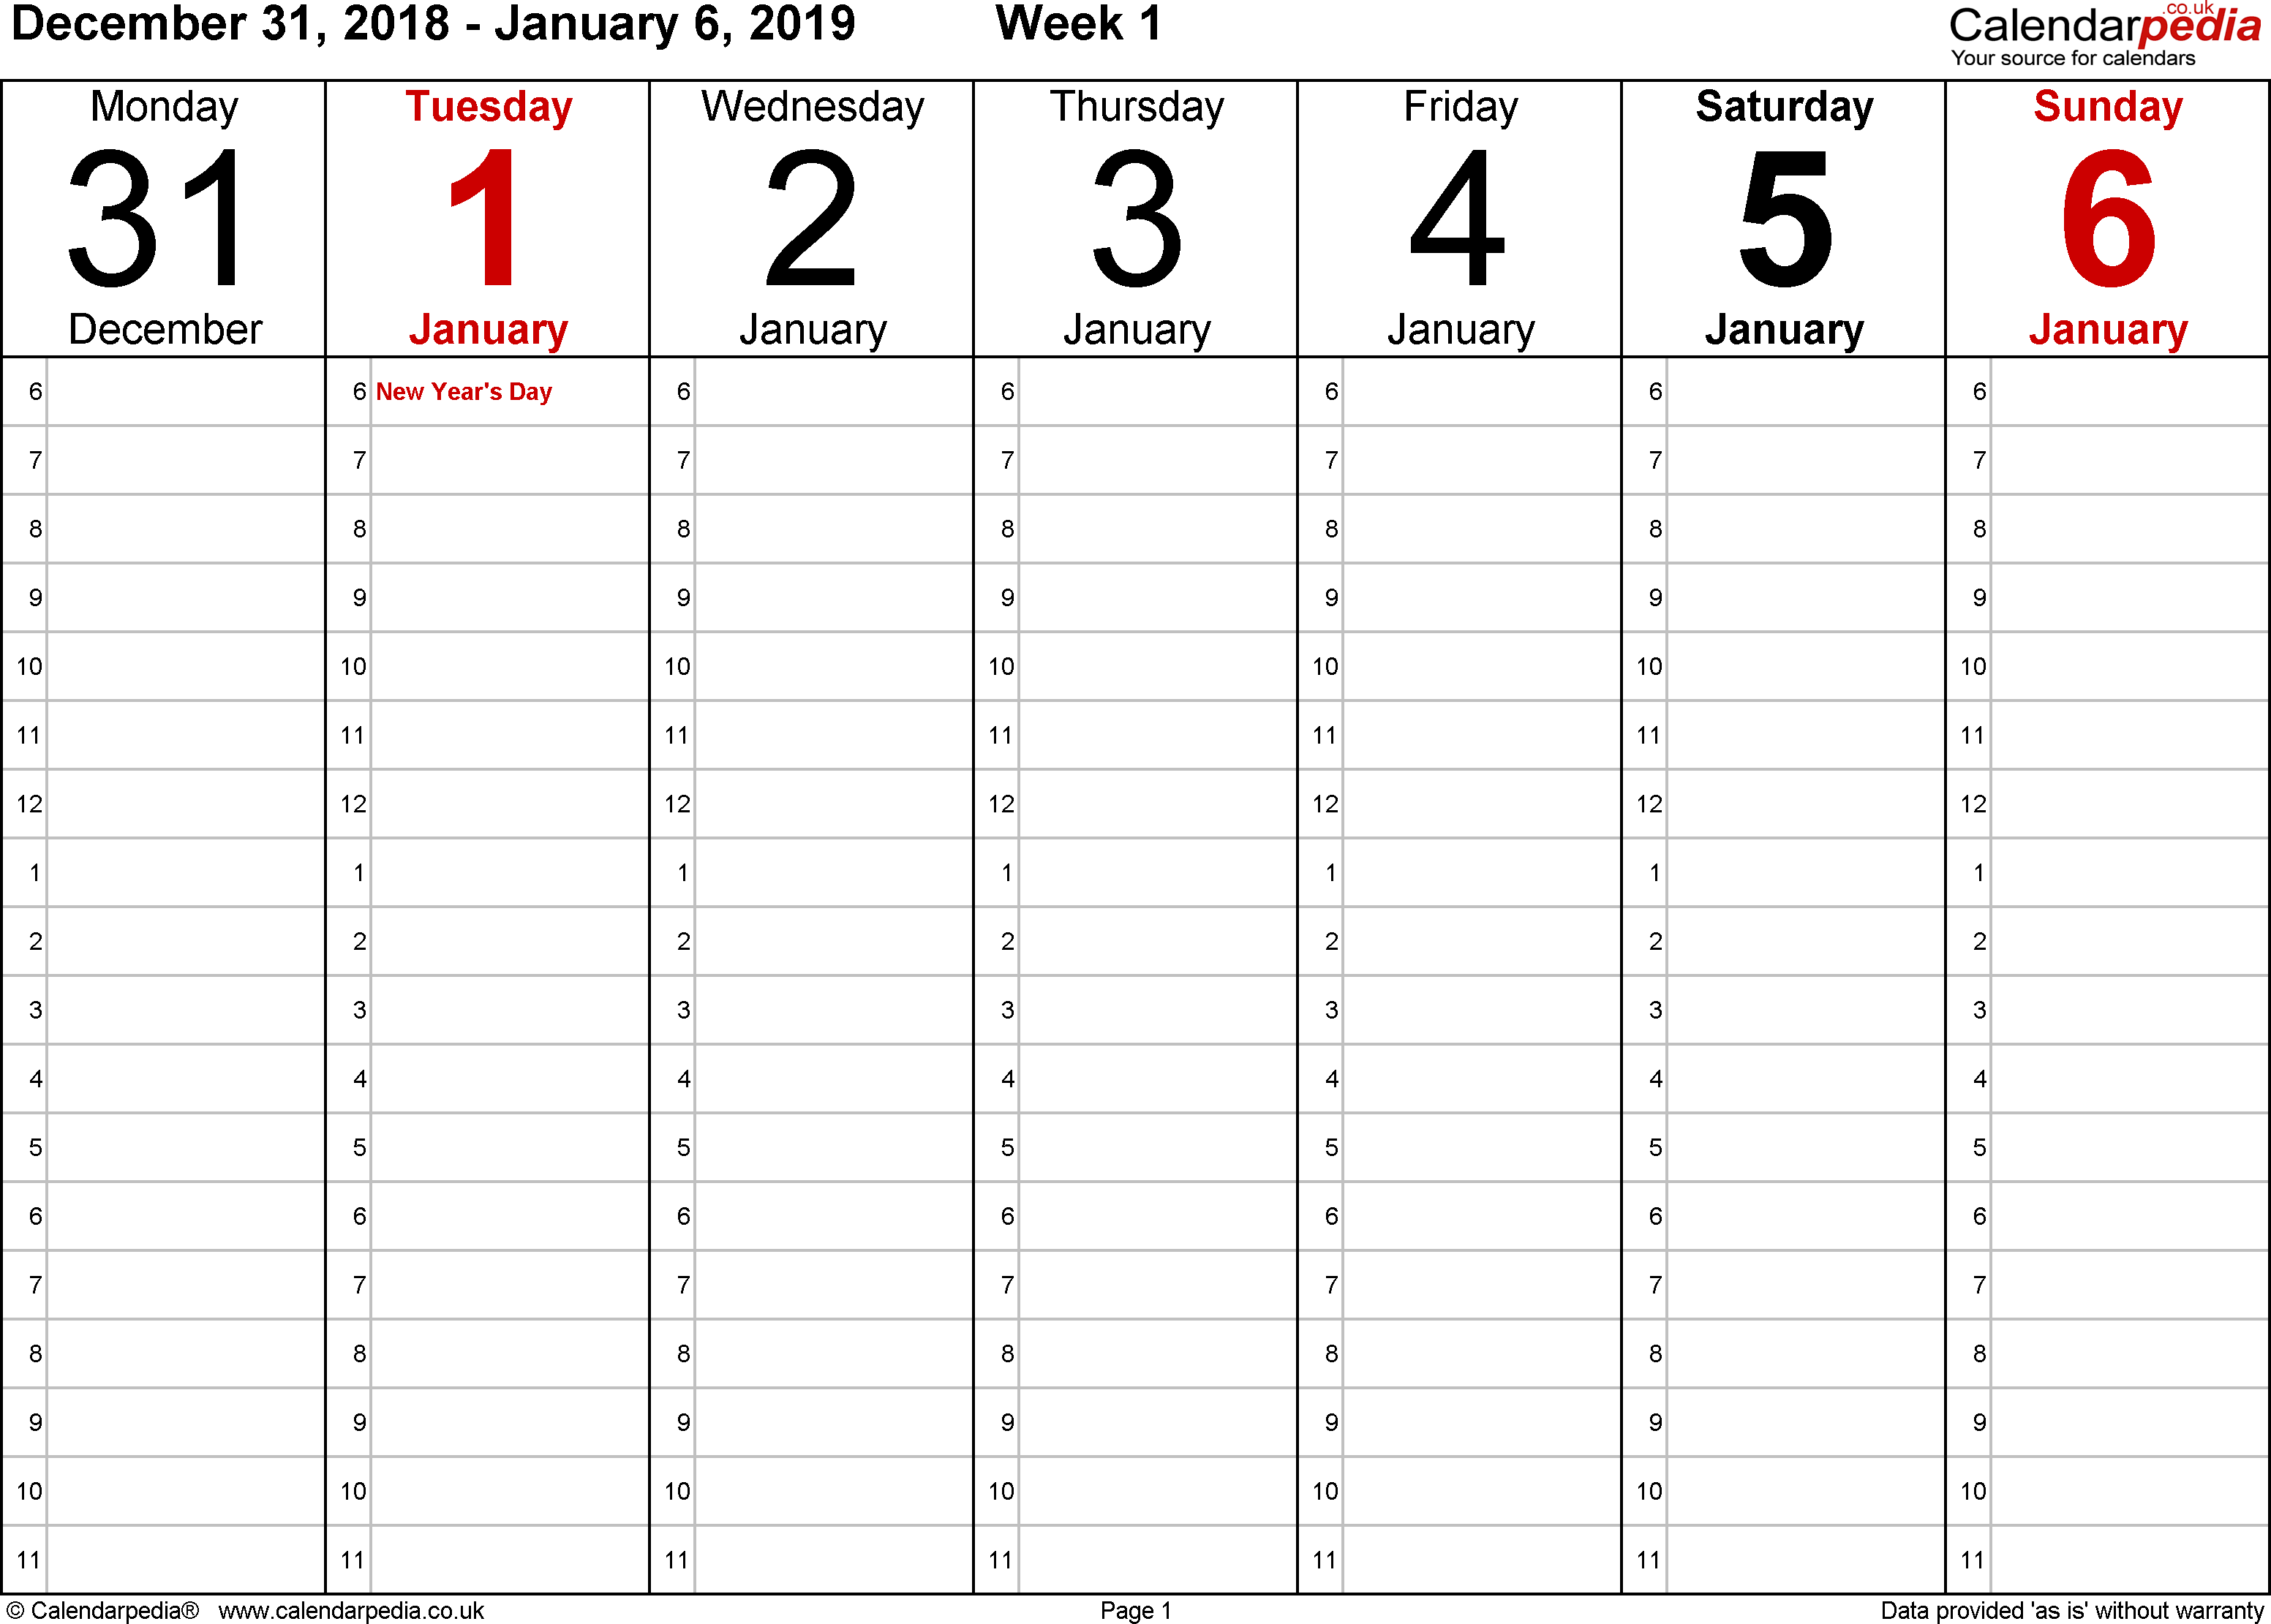 word template 1 weekly calendar 2019 landscape orientation 53 pages 1 calendar